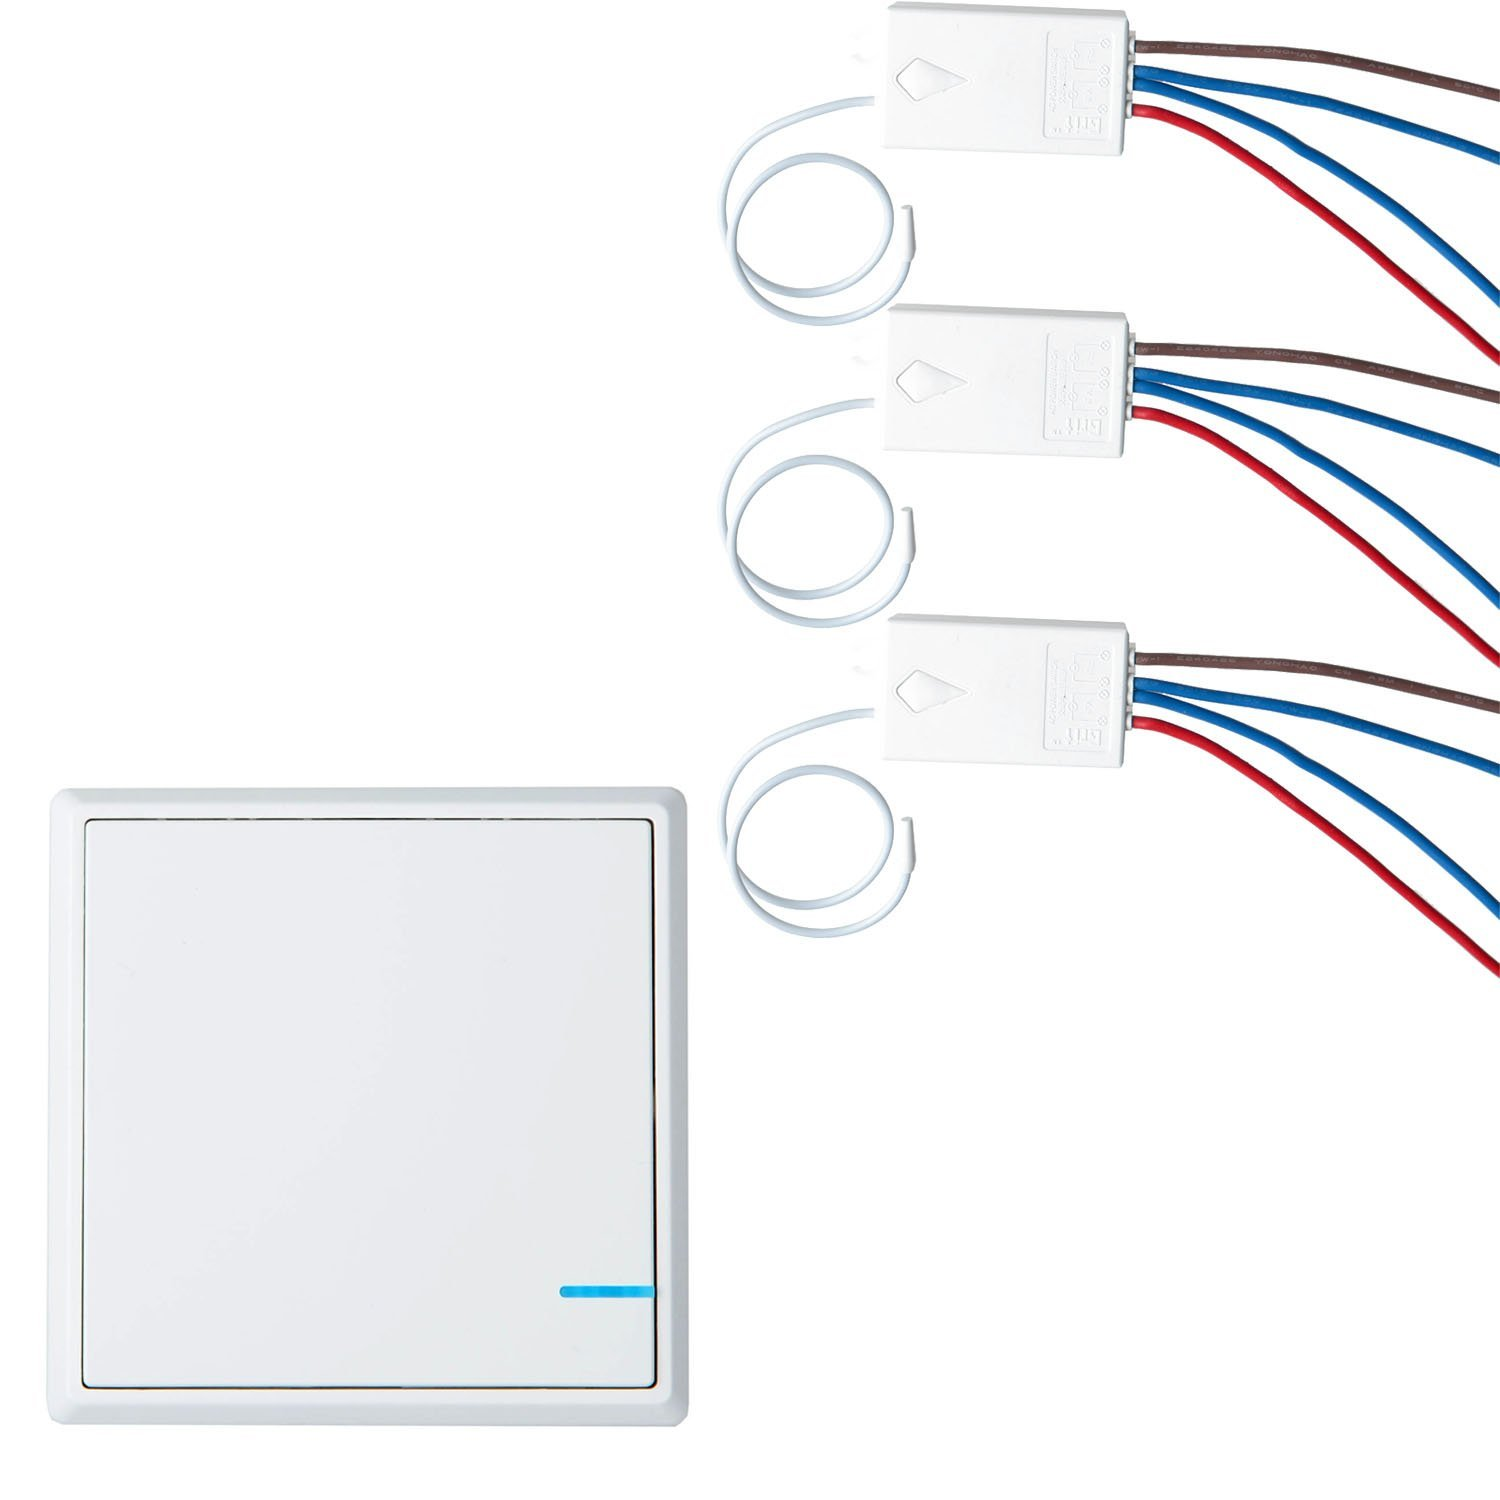 Cheap Wireless Light Switch And Receiver Find How To Wire A Plug Outlet Remote Get Quotations Greencycle Smart Wall 1 3 Control